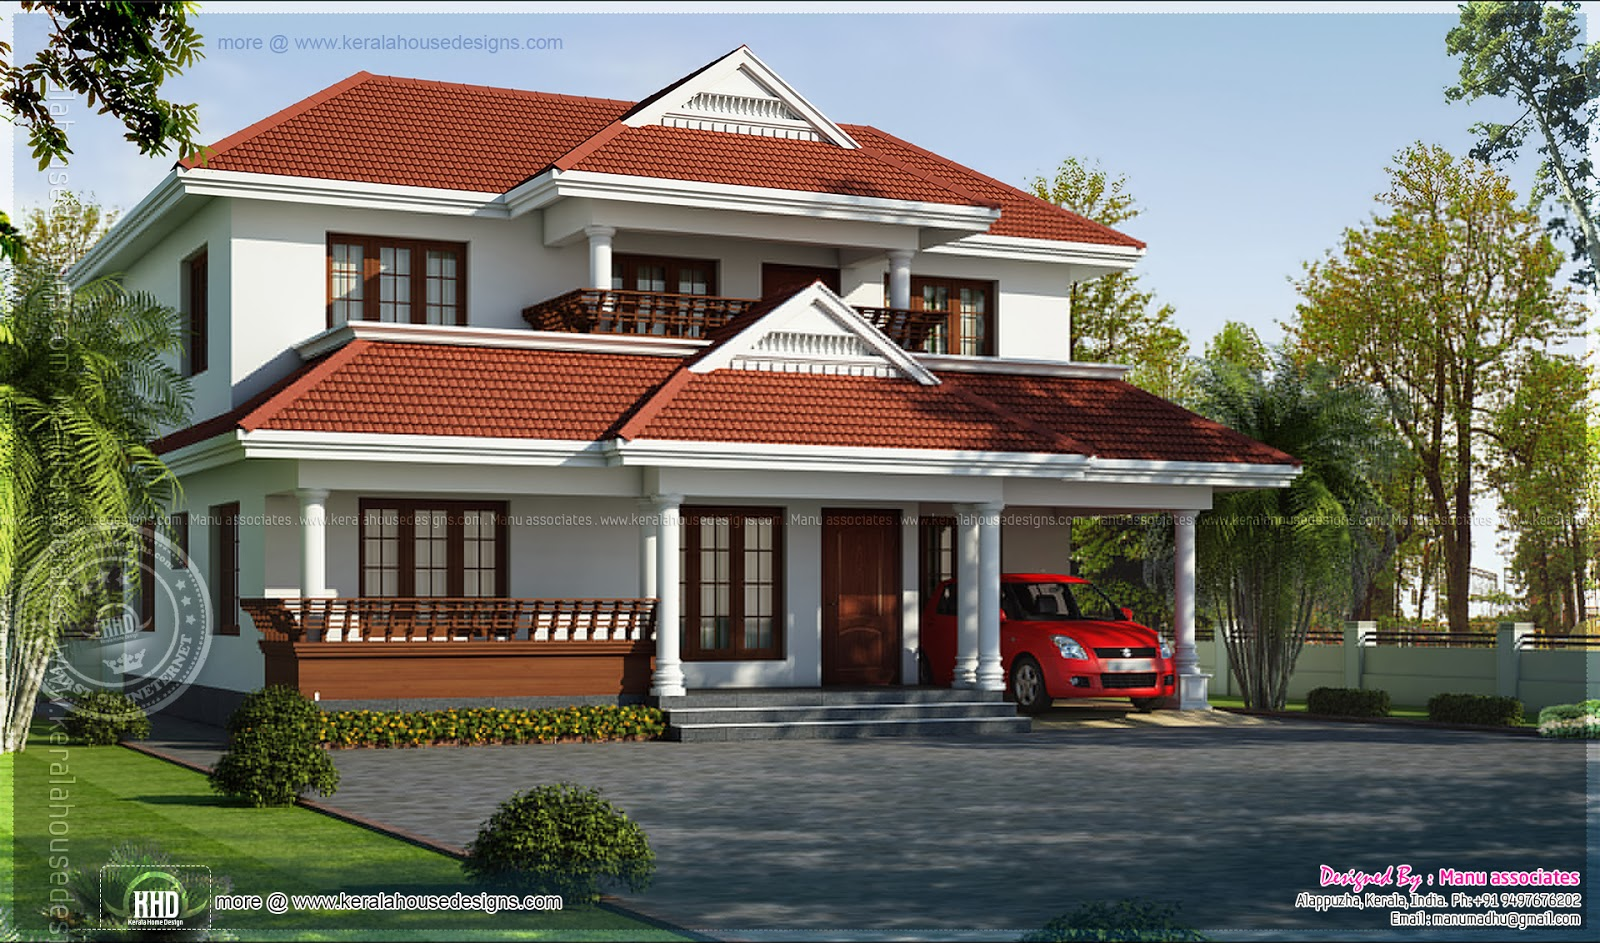 4 bedroom kerala model house in 2020 square feet kerala for New home models and plans